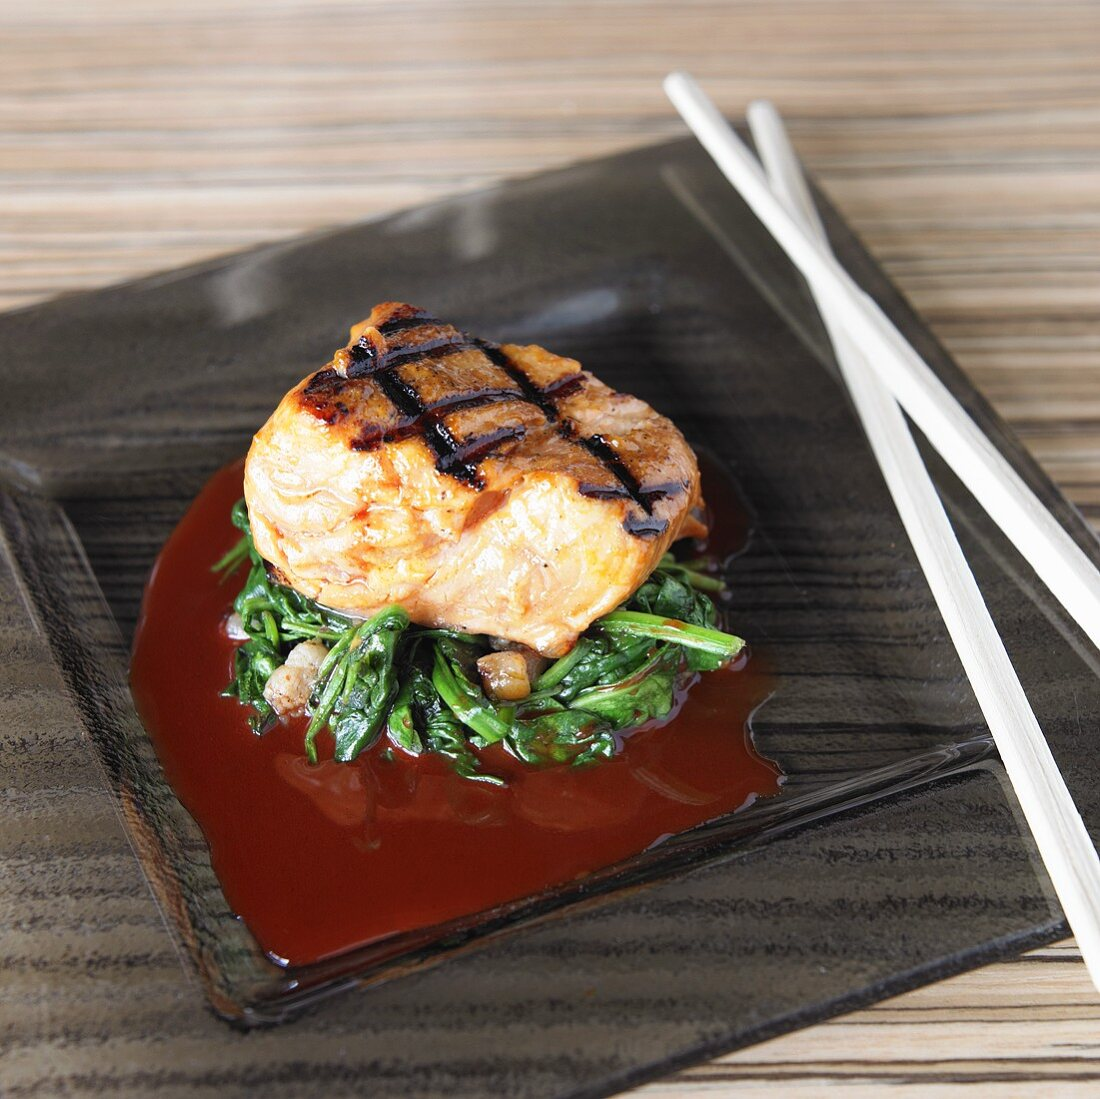 Grilled salmon fillet with greens, achiote and ponzu sauce